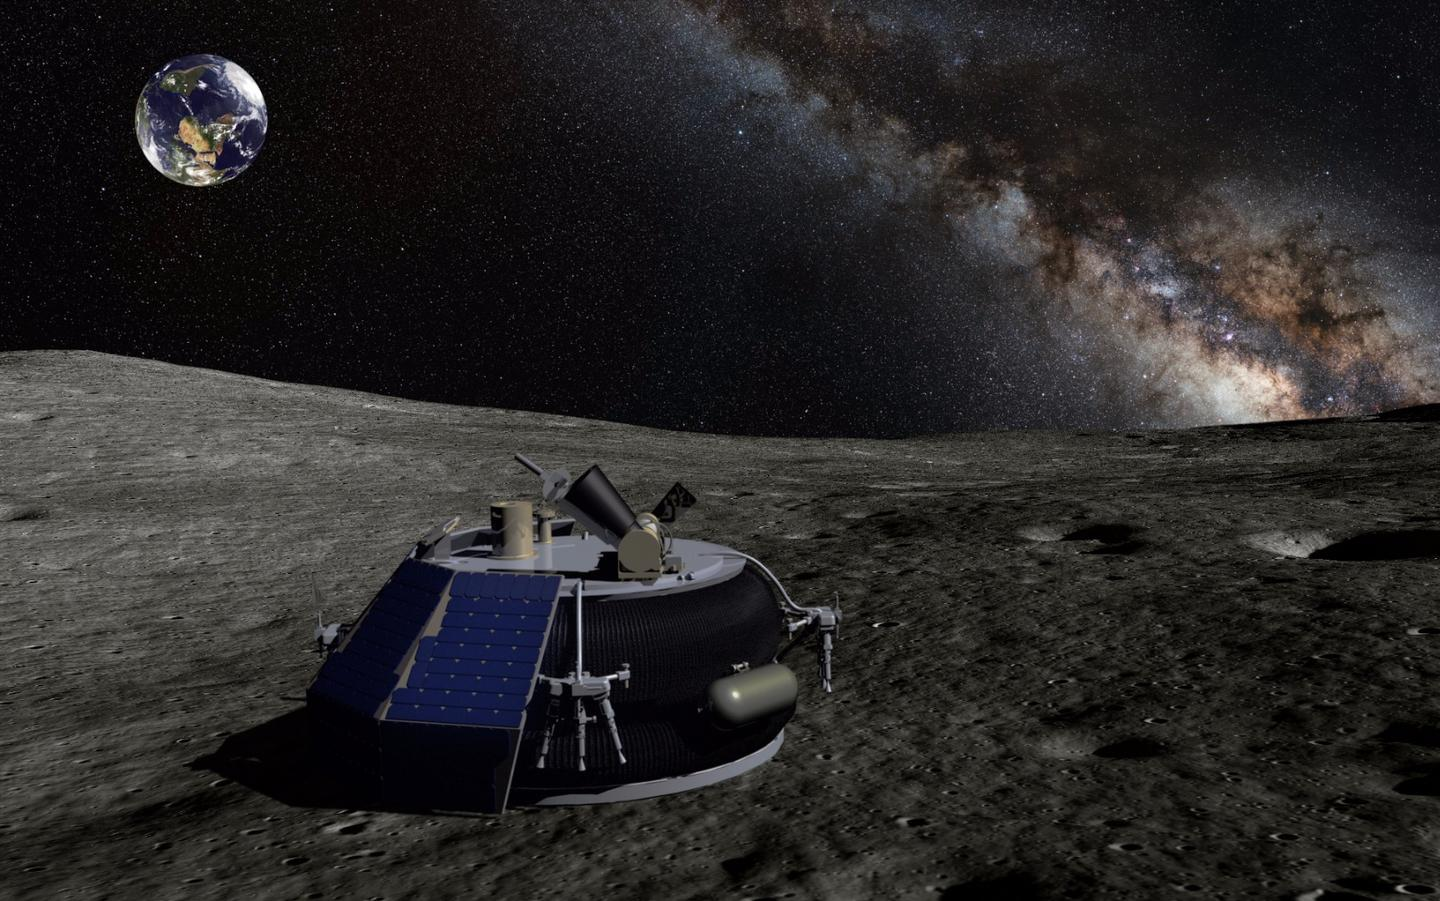 Moon Express is hoping it can contribute to the advancement of technology, science, research and development